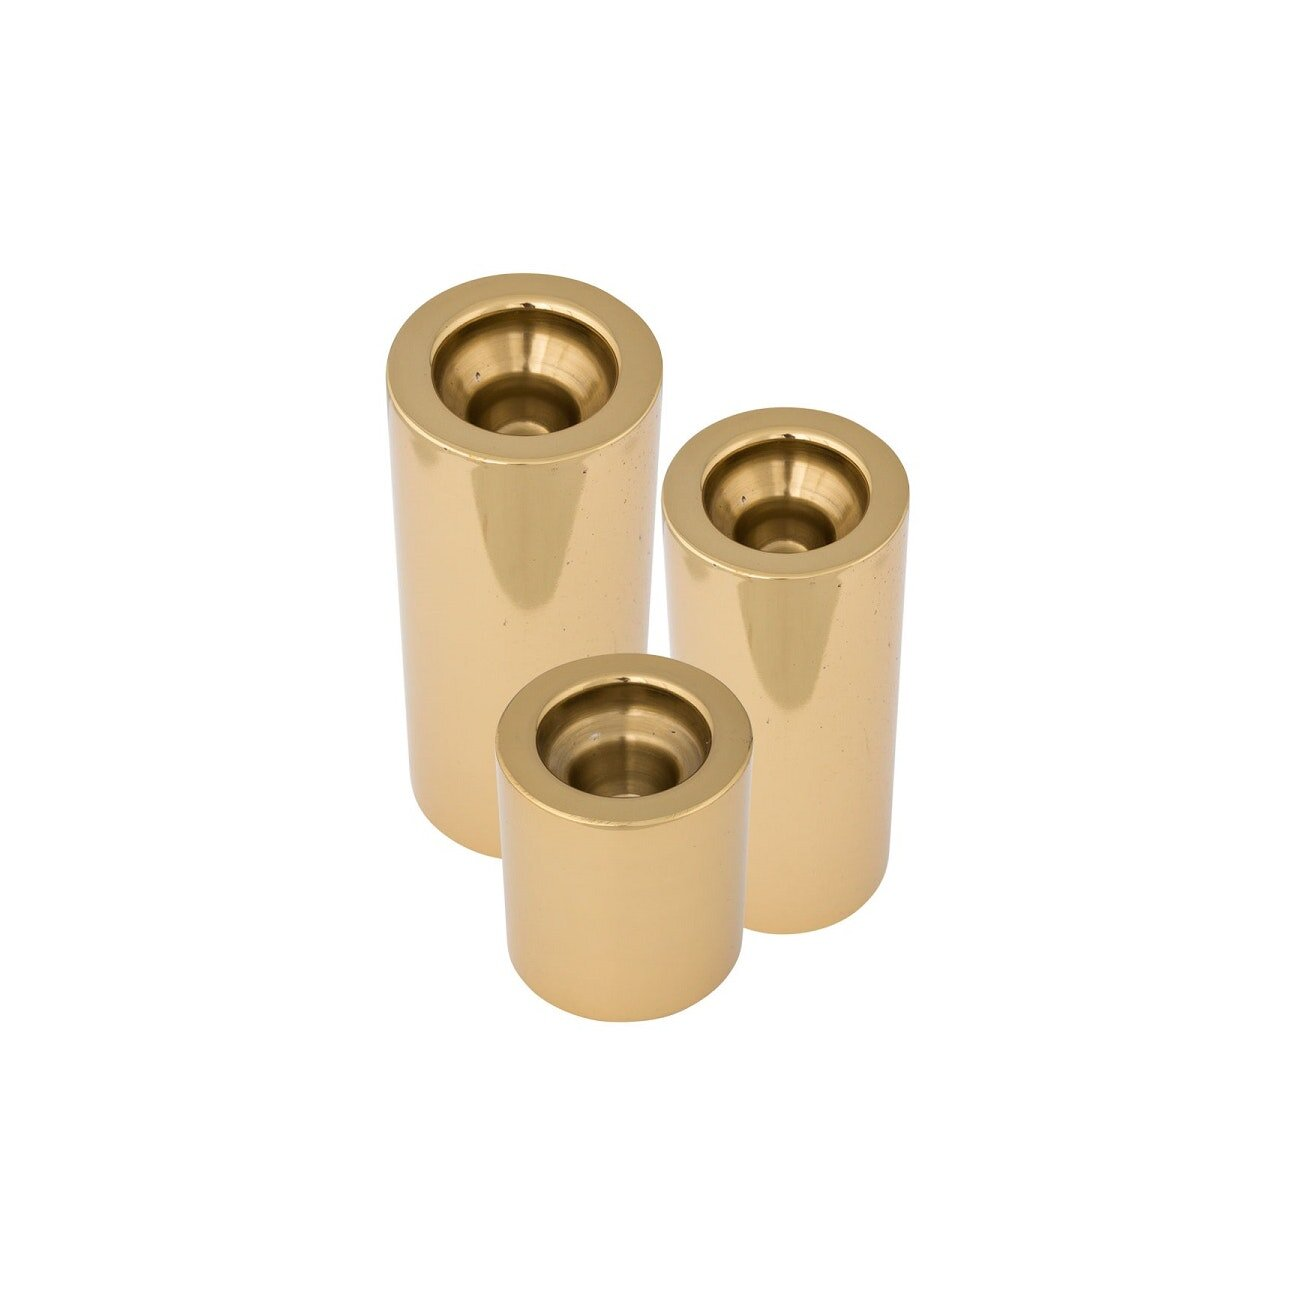 gold candle holders.jpg